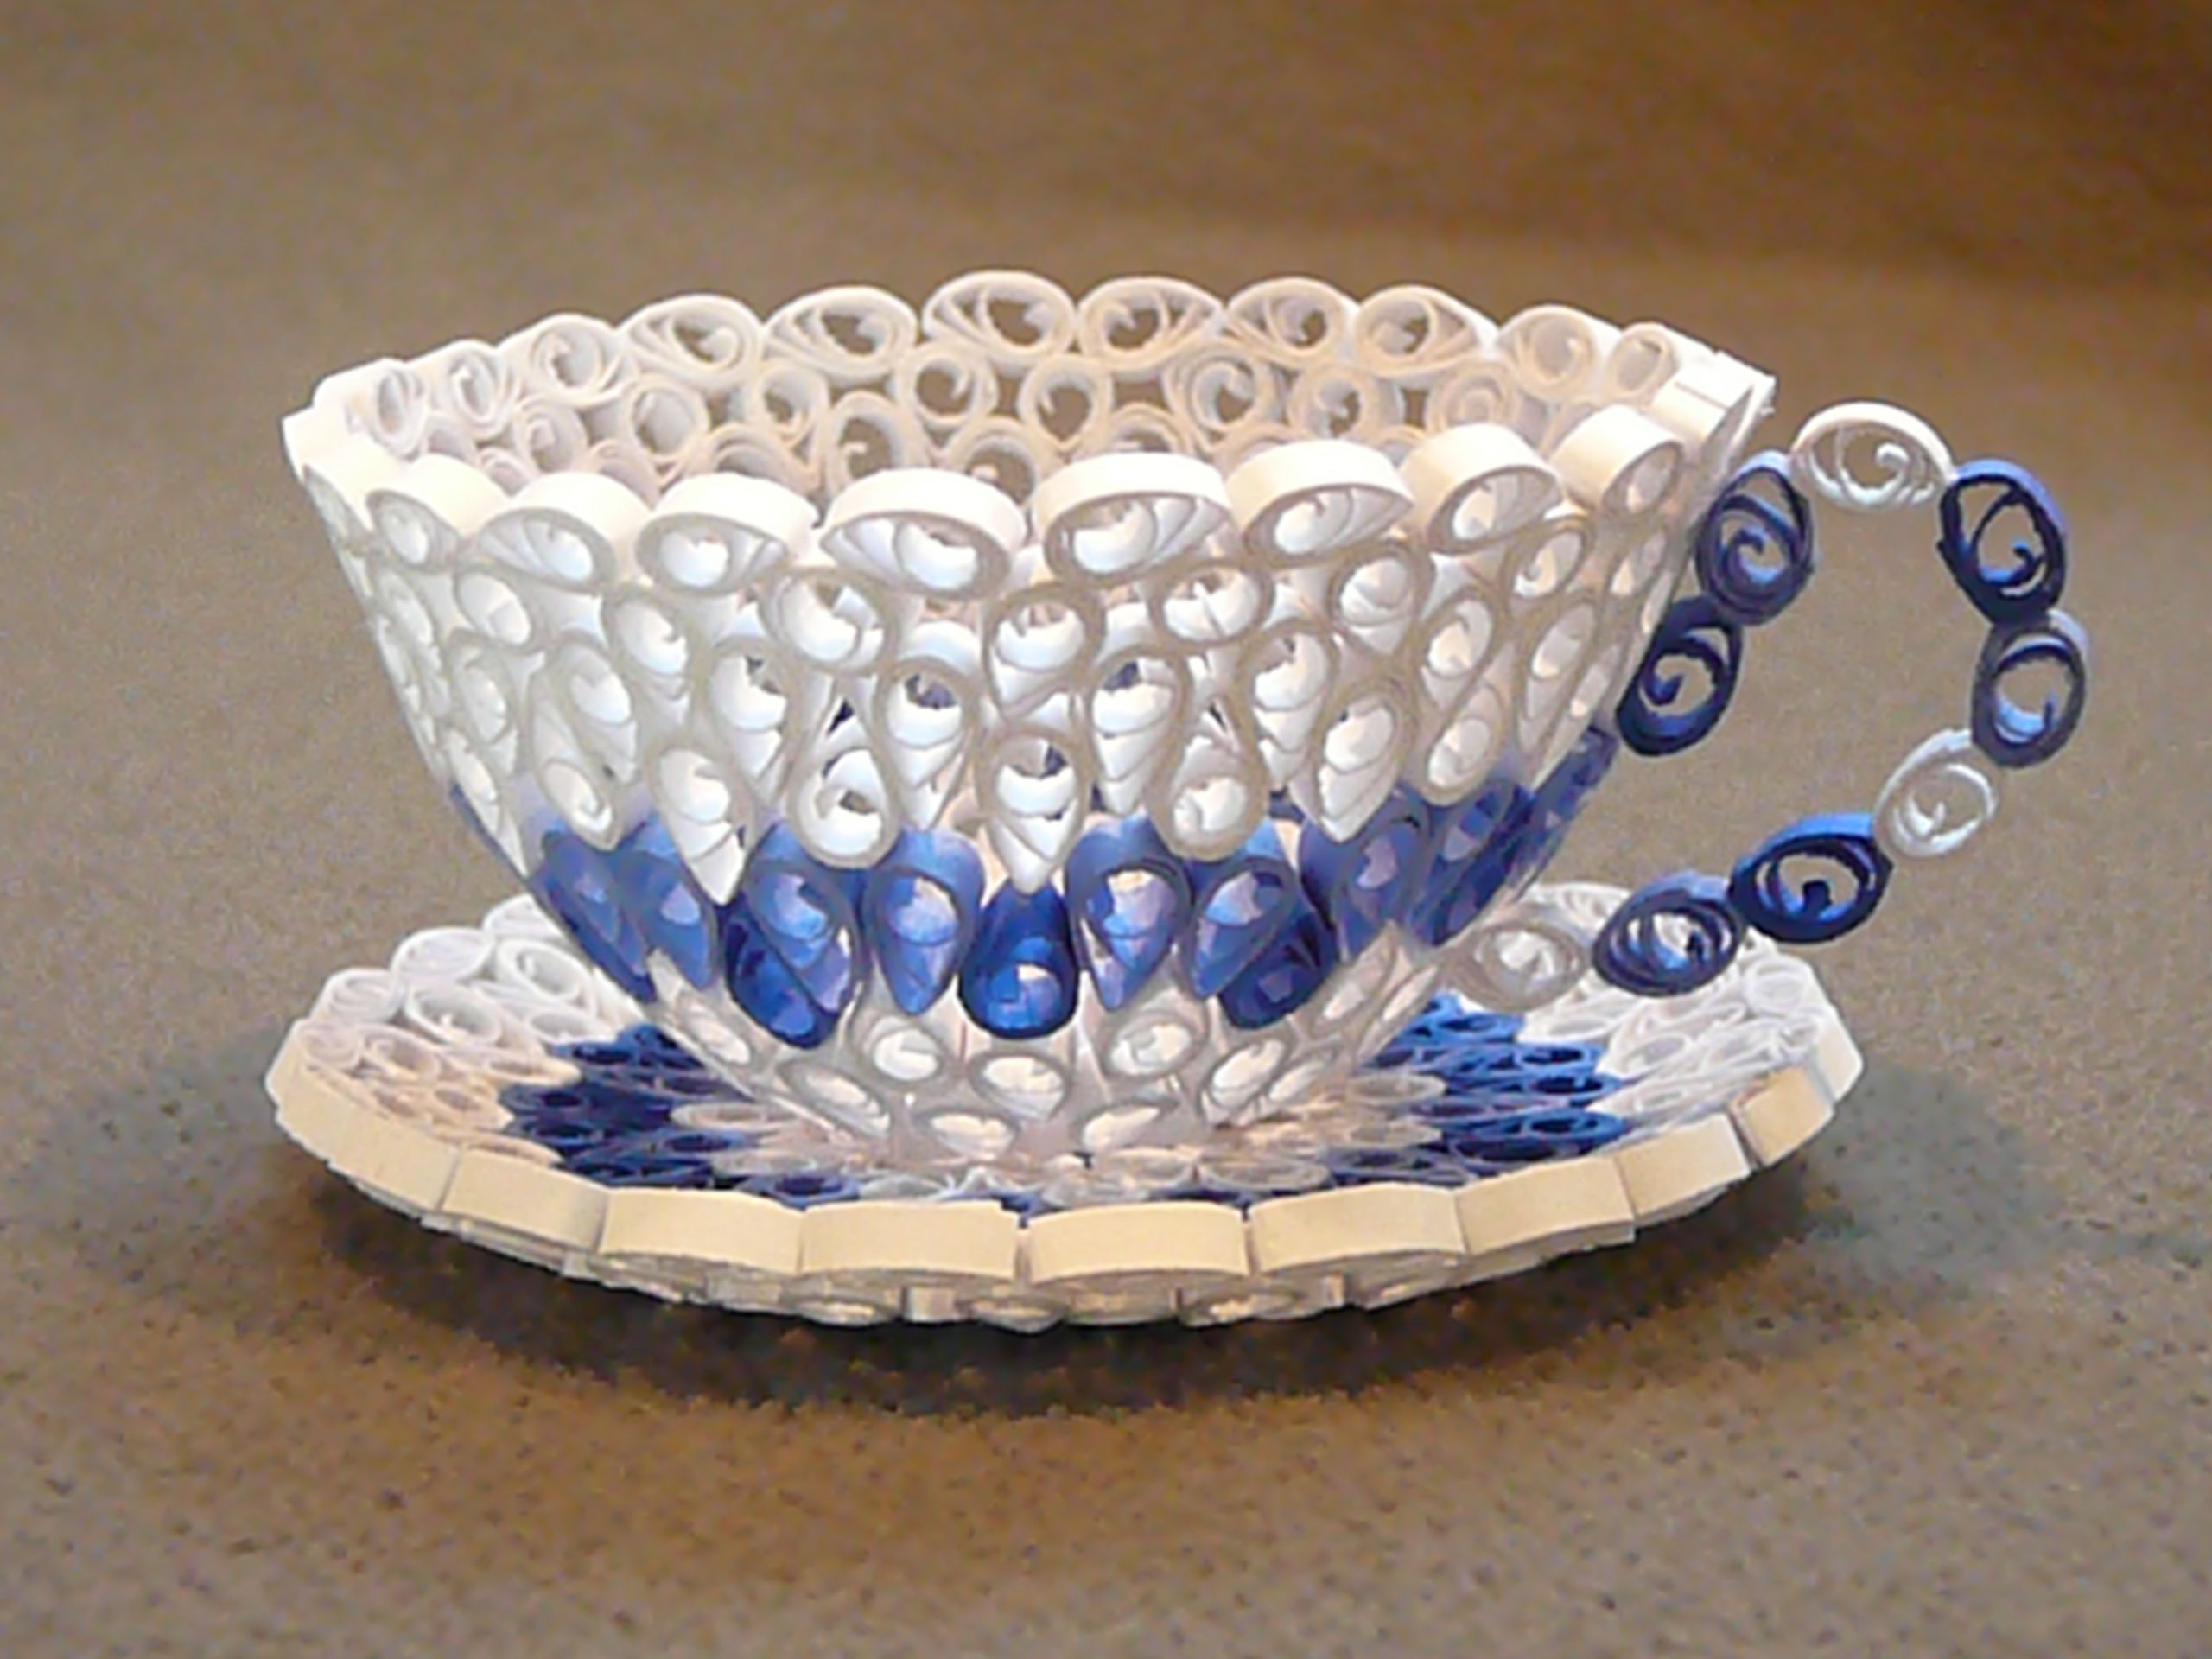 Paper Quilled Cup & Saucer. Quilling paper craft